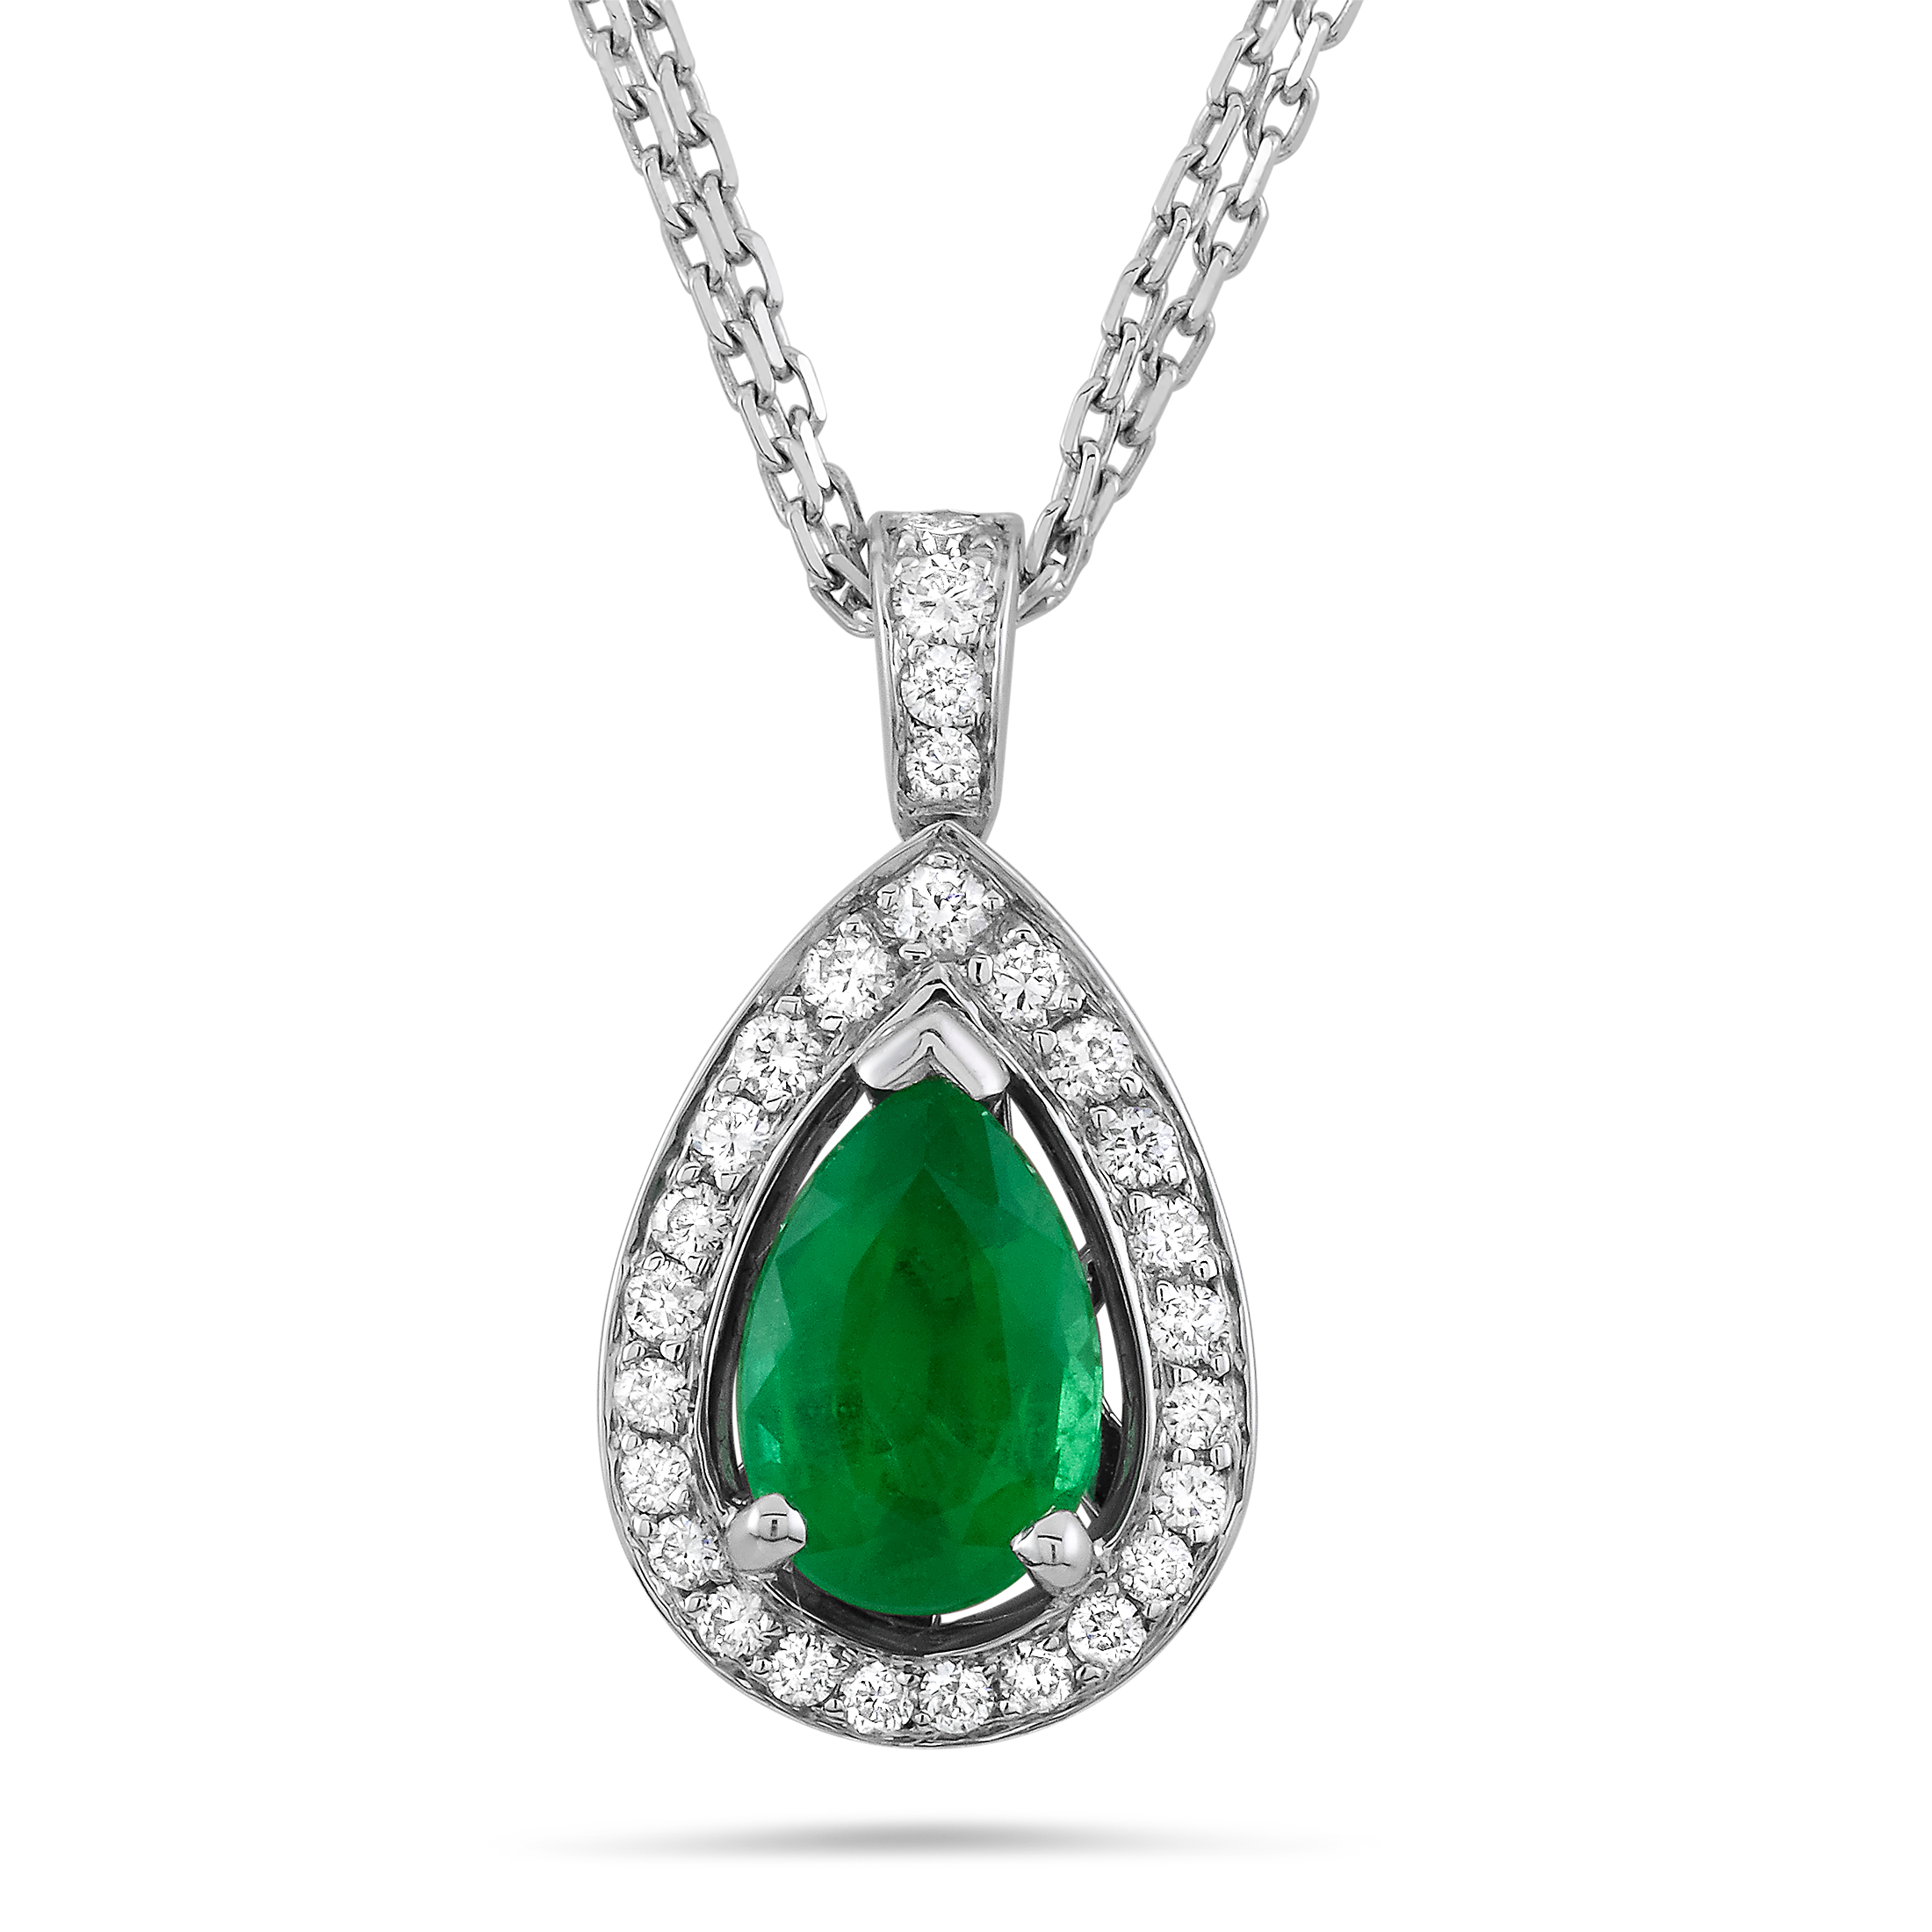 Green Jewellery Png image #36042